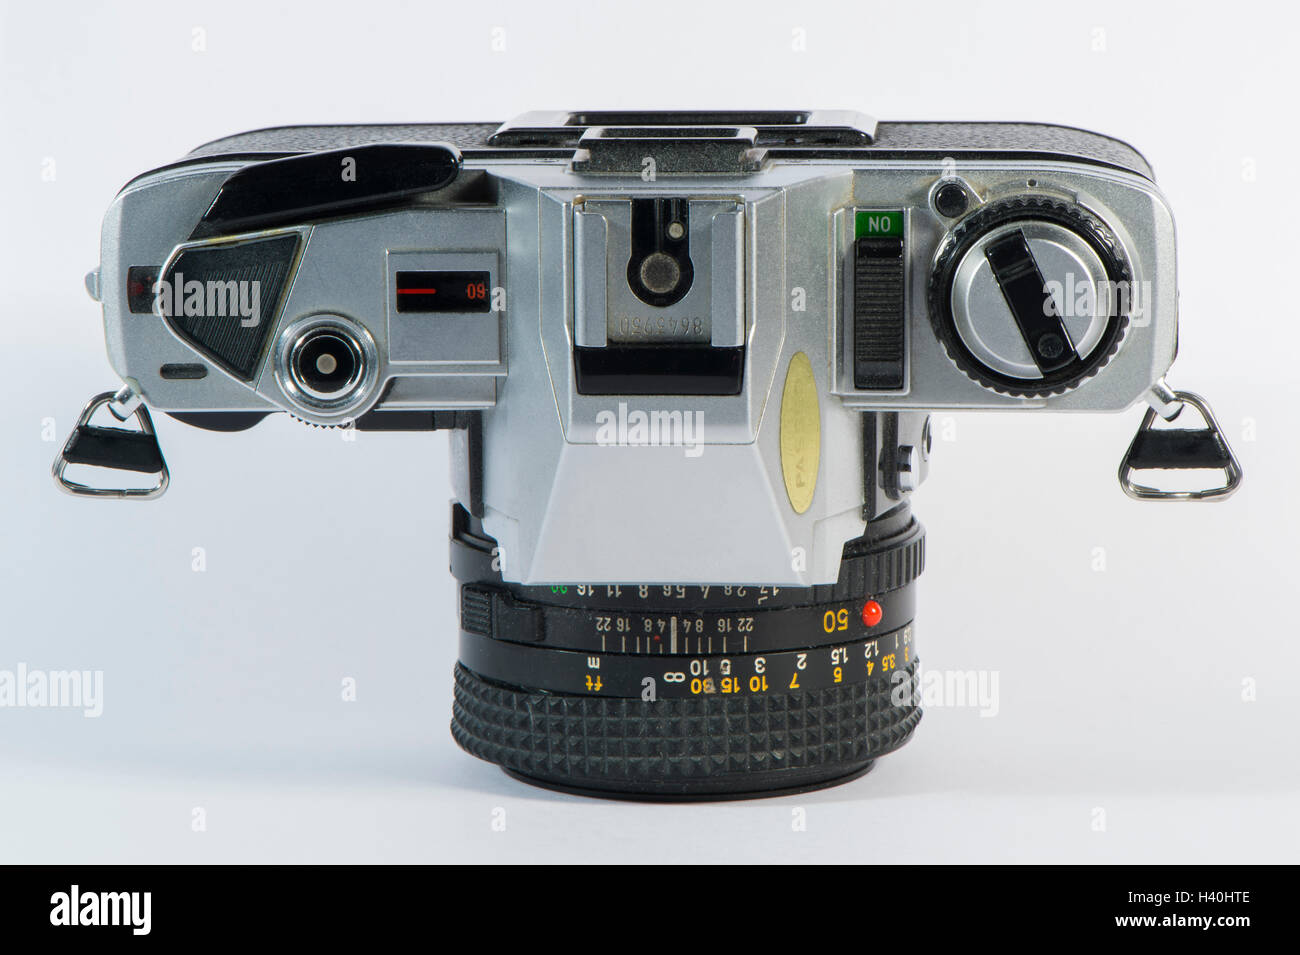 Classic 1980's Minolta X-300 - 35mm film, single lens reflex camera with a 50mm Minolta prime lens, against - Stock Image